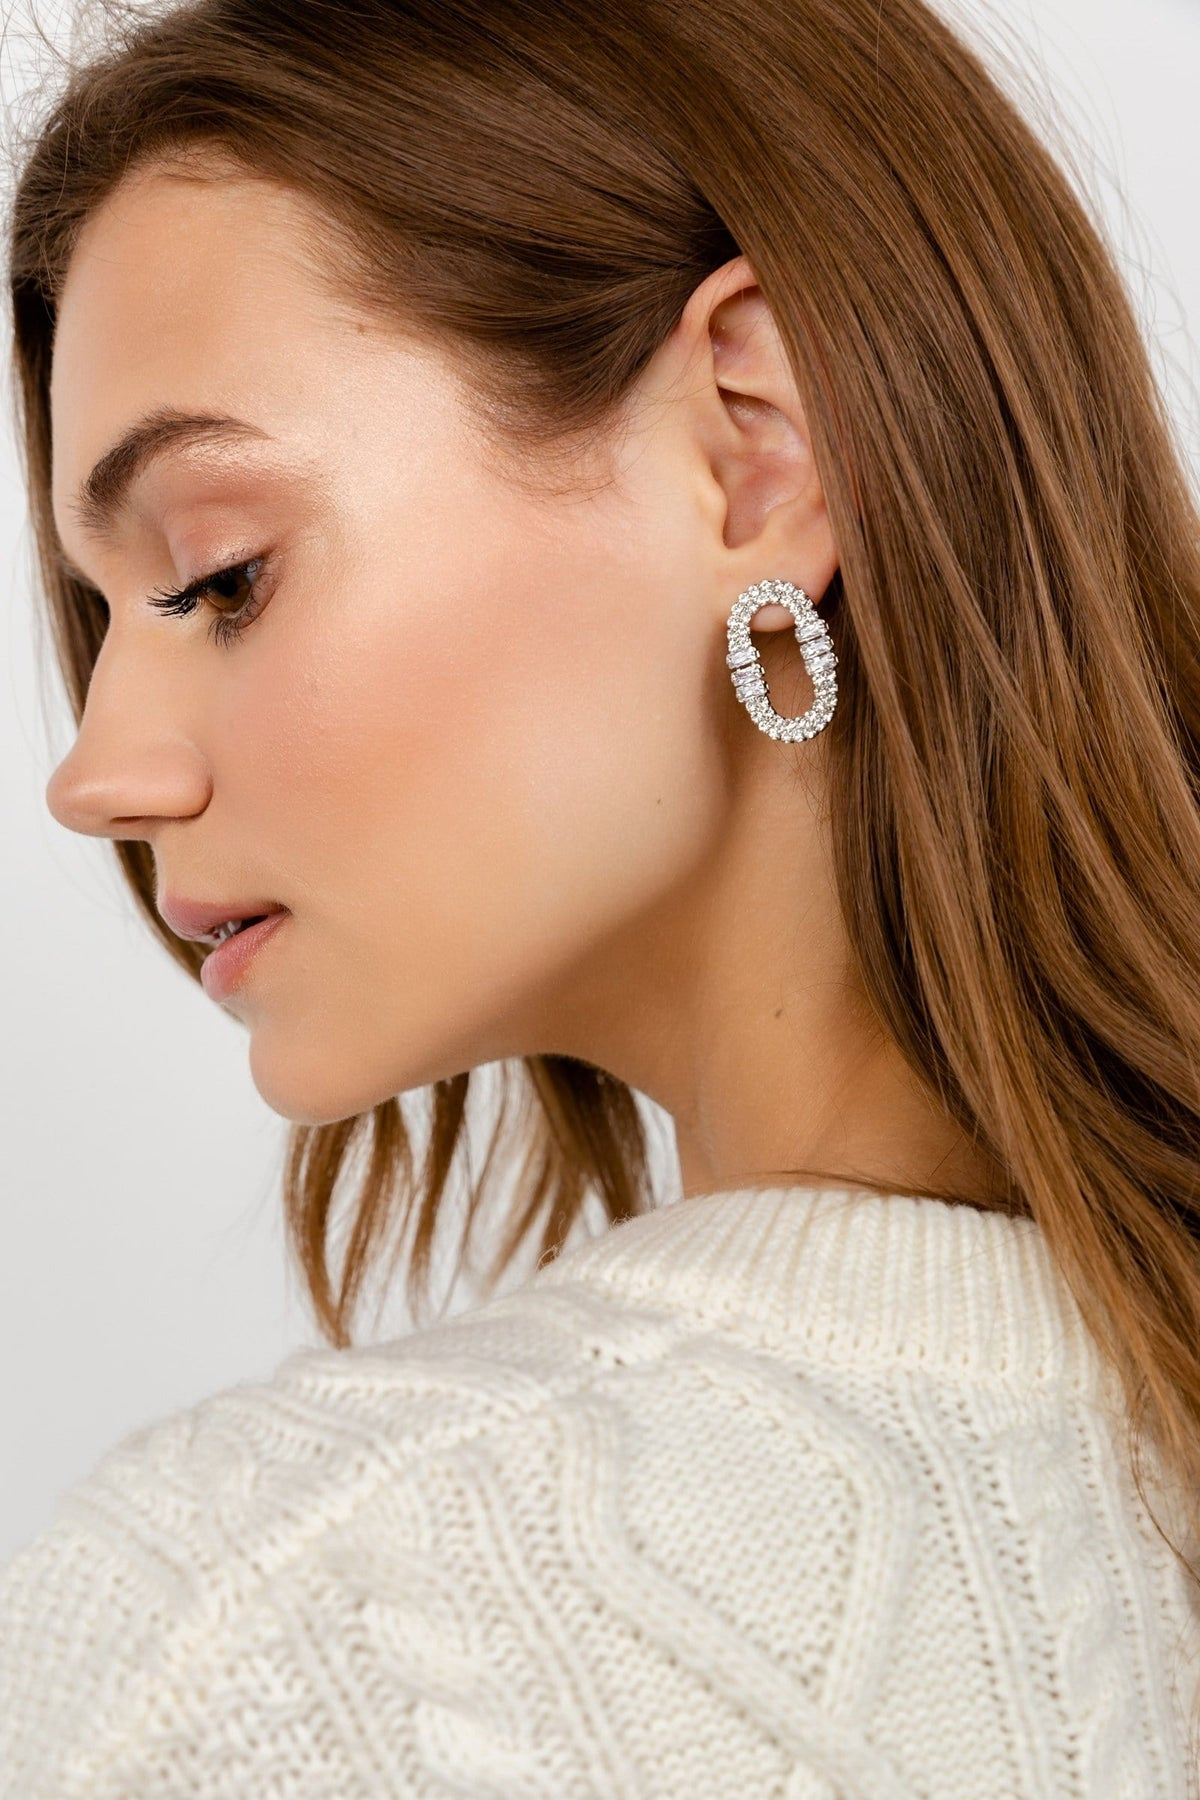 O-vation Earrings